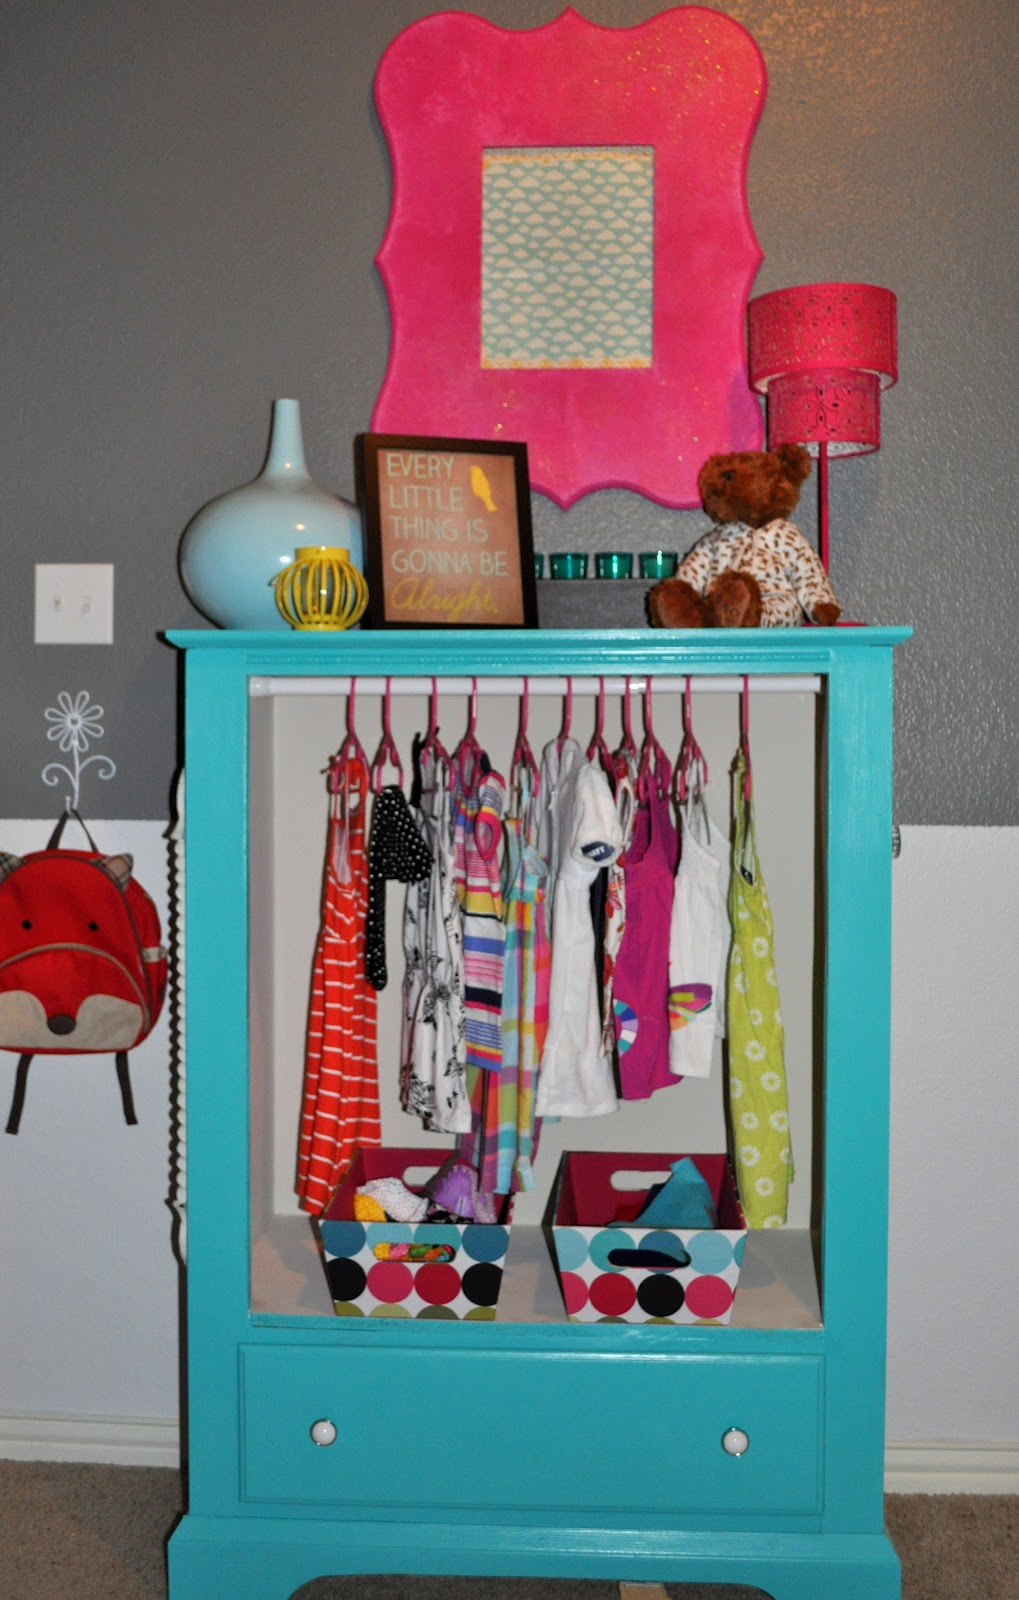 Dress up Clothes Dresser is For Dress-up Clothes